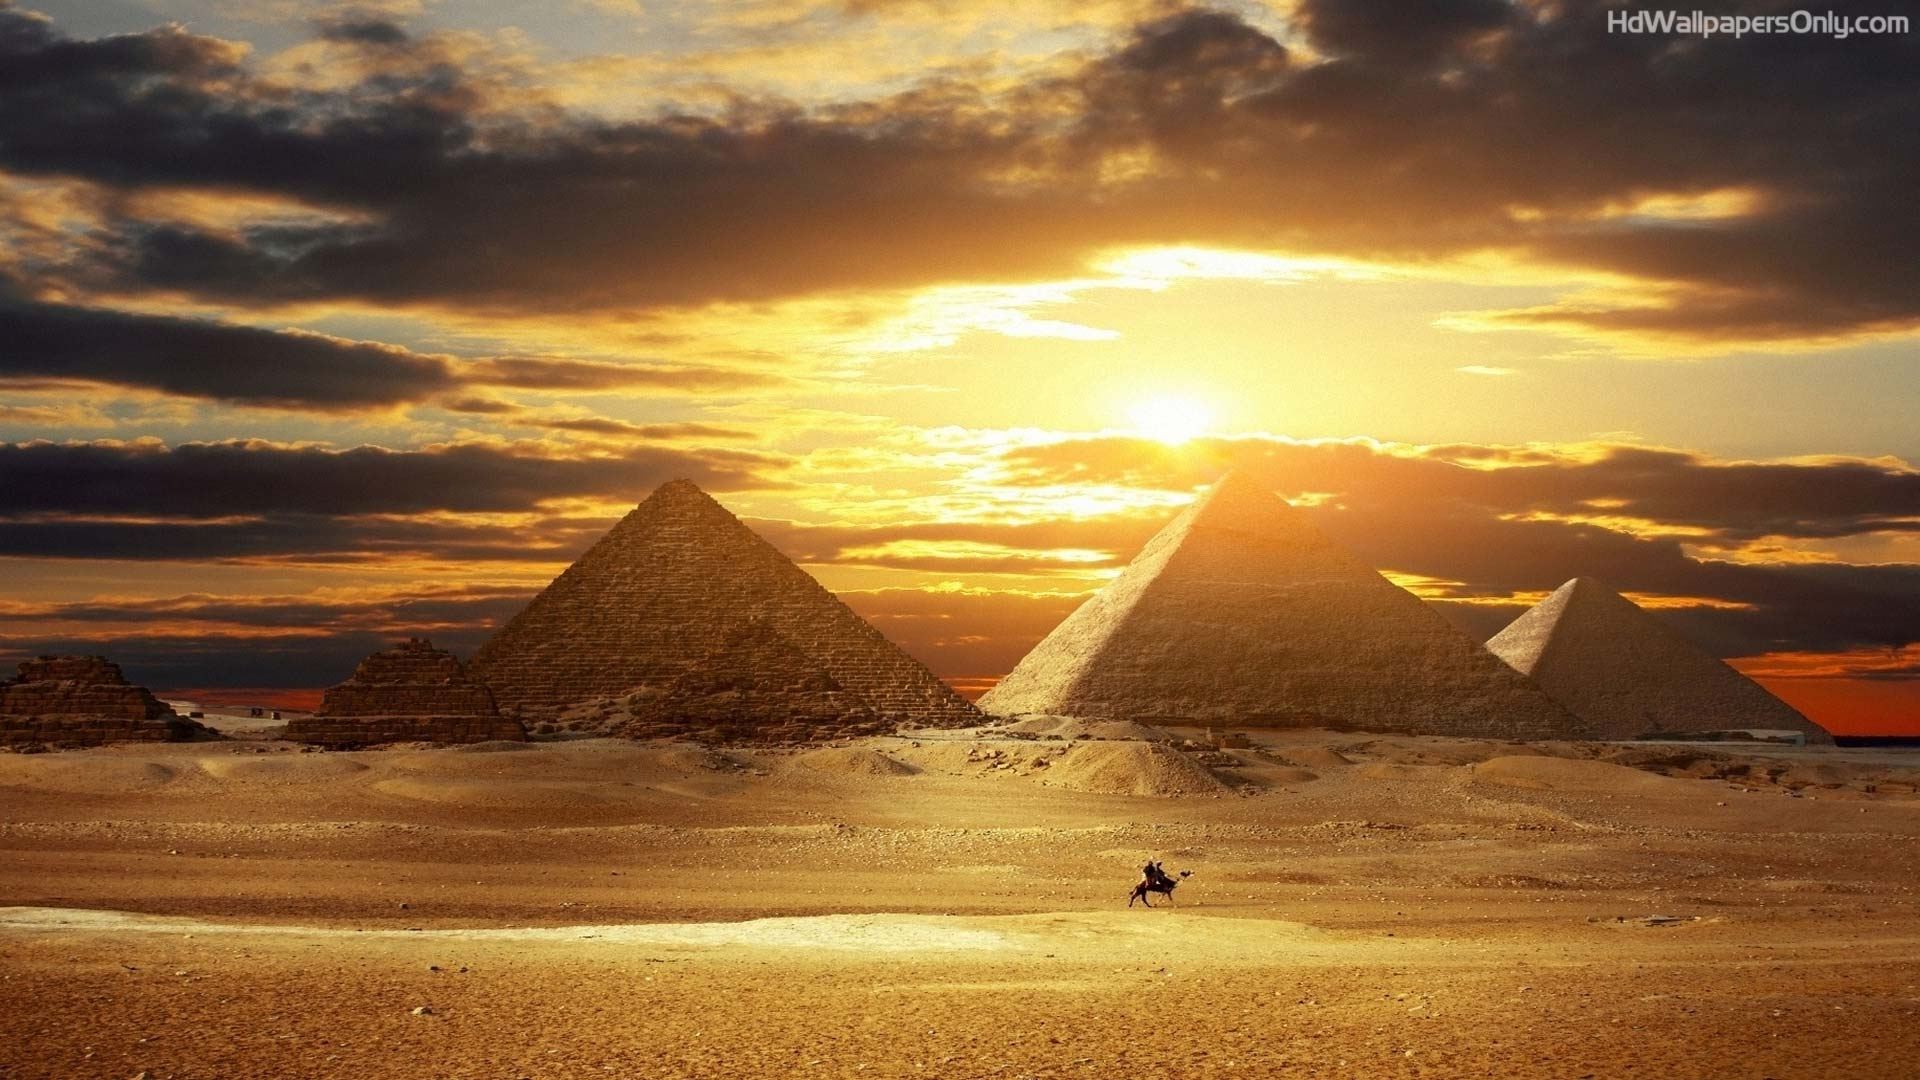 egypt desktop wallpaper